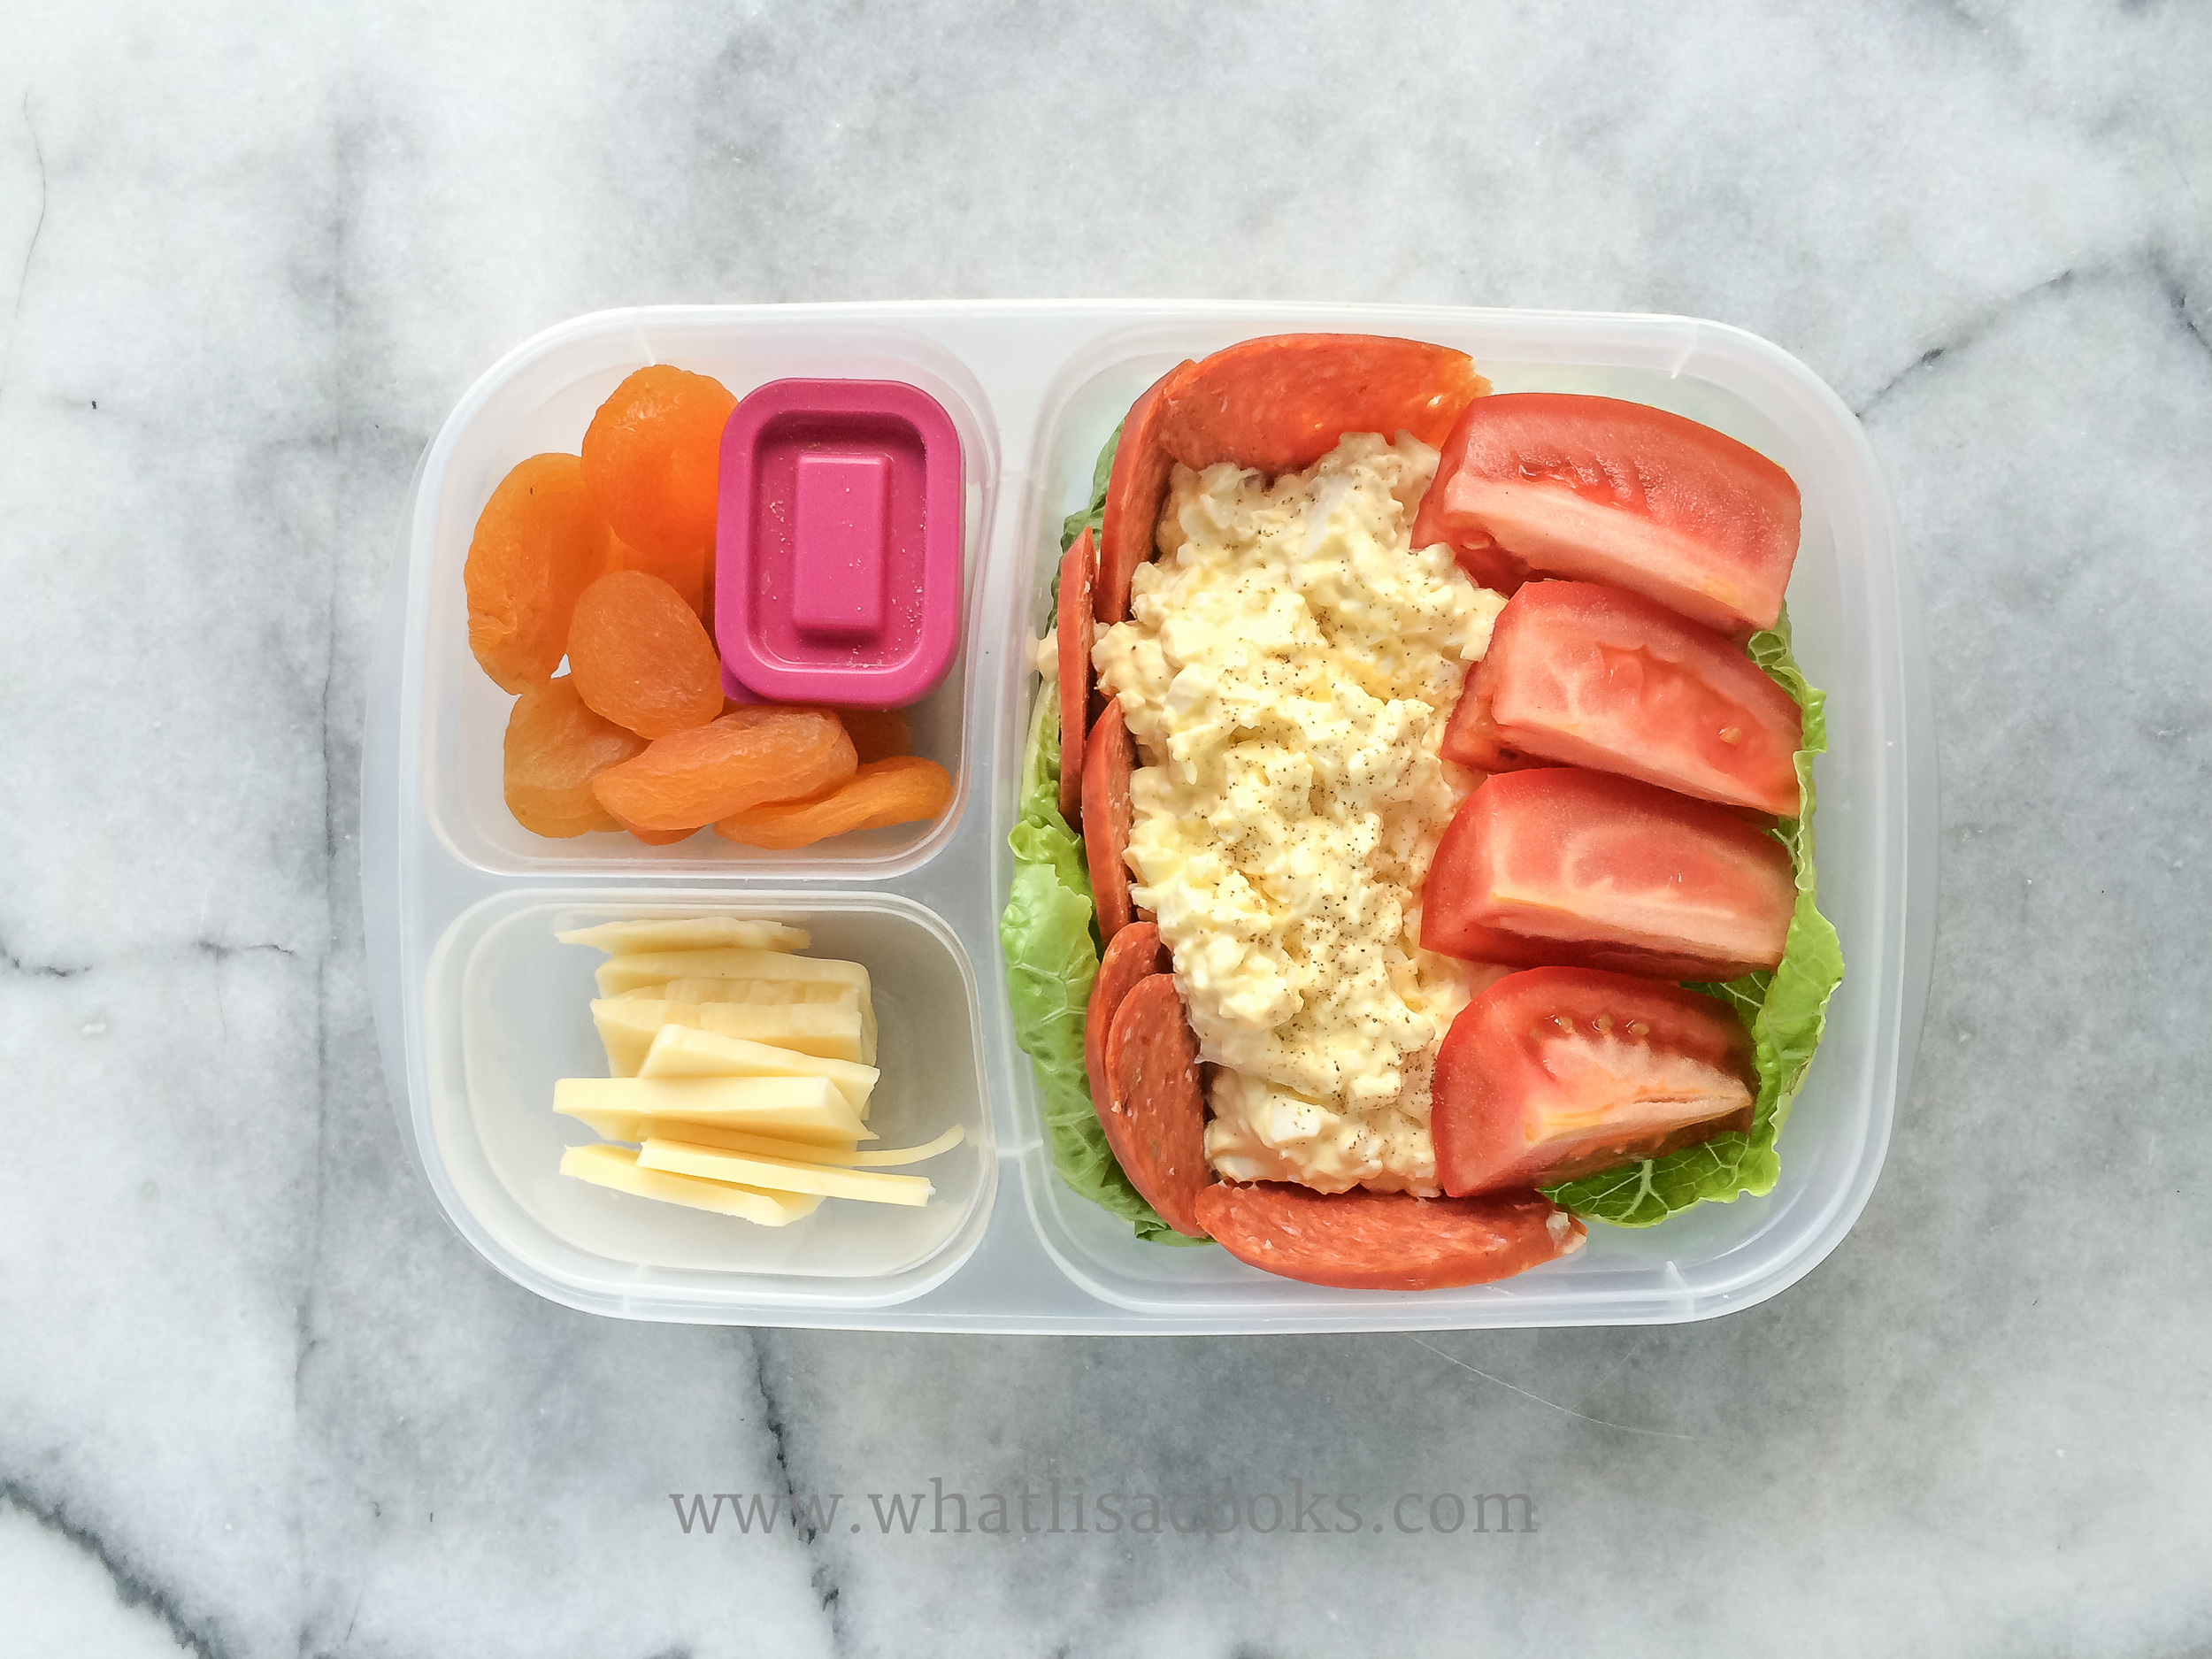 Egg salad, pepperoni, tomatoes, apricots, cheese.